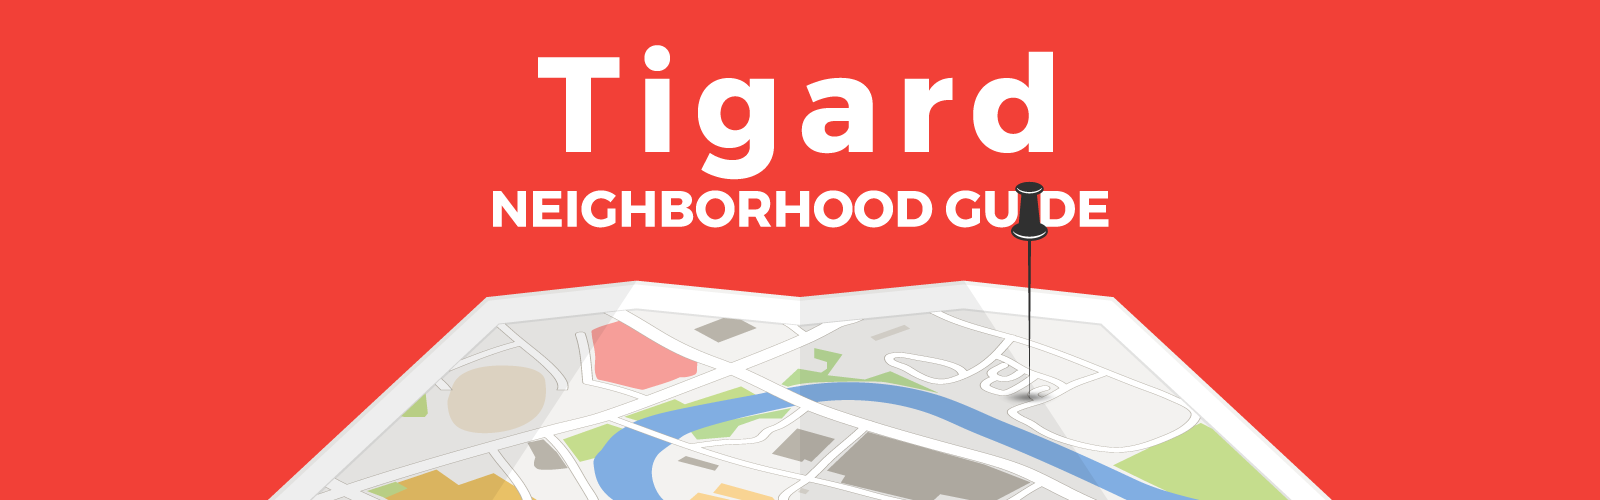 Tigard Portland Neighborhood Guide